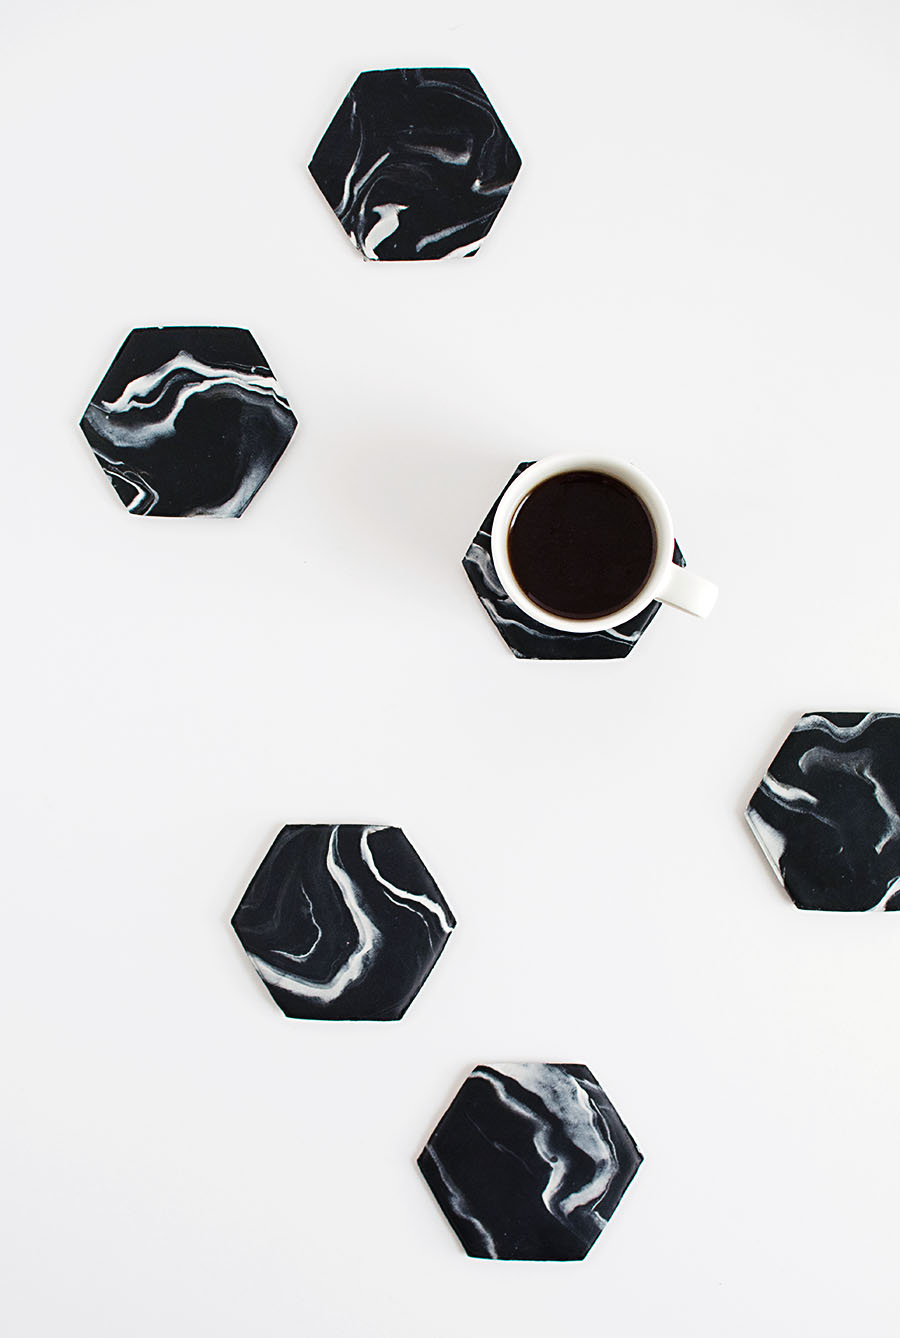 Black Marble Hexagon Coasters DIY